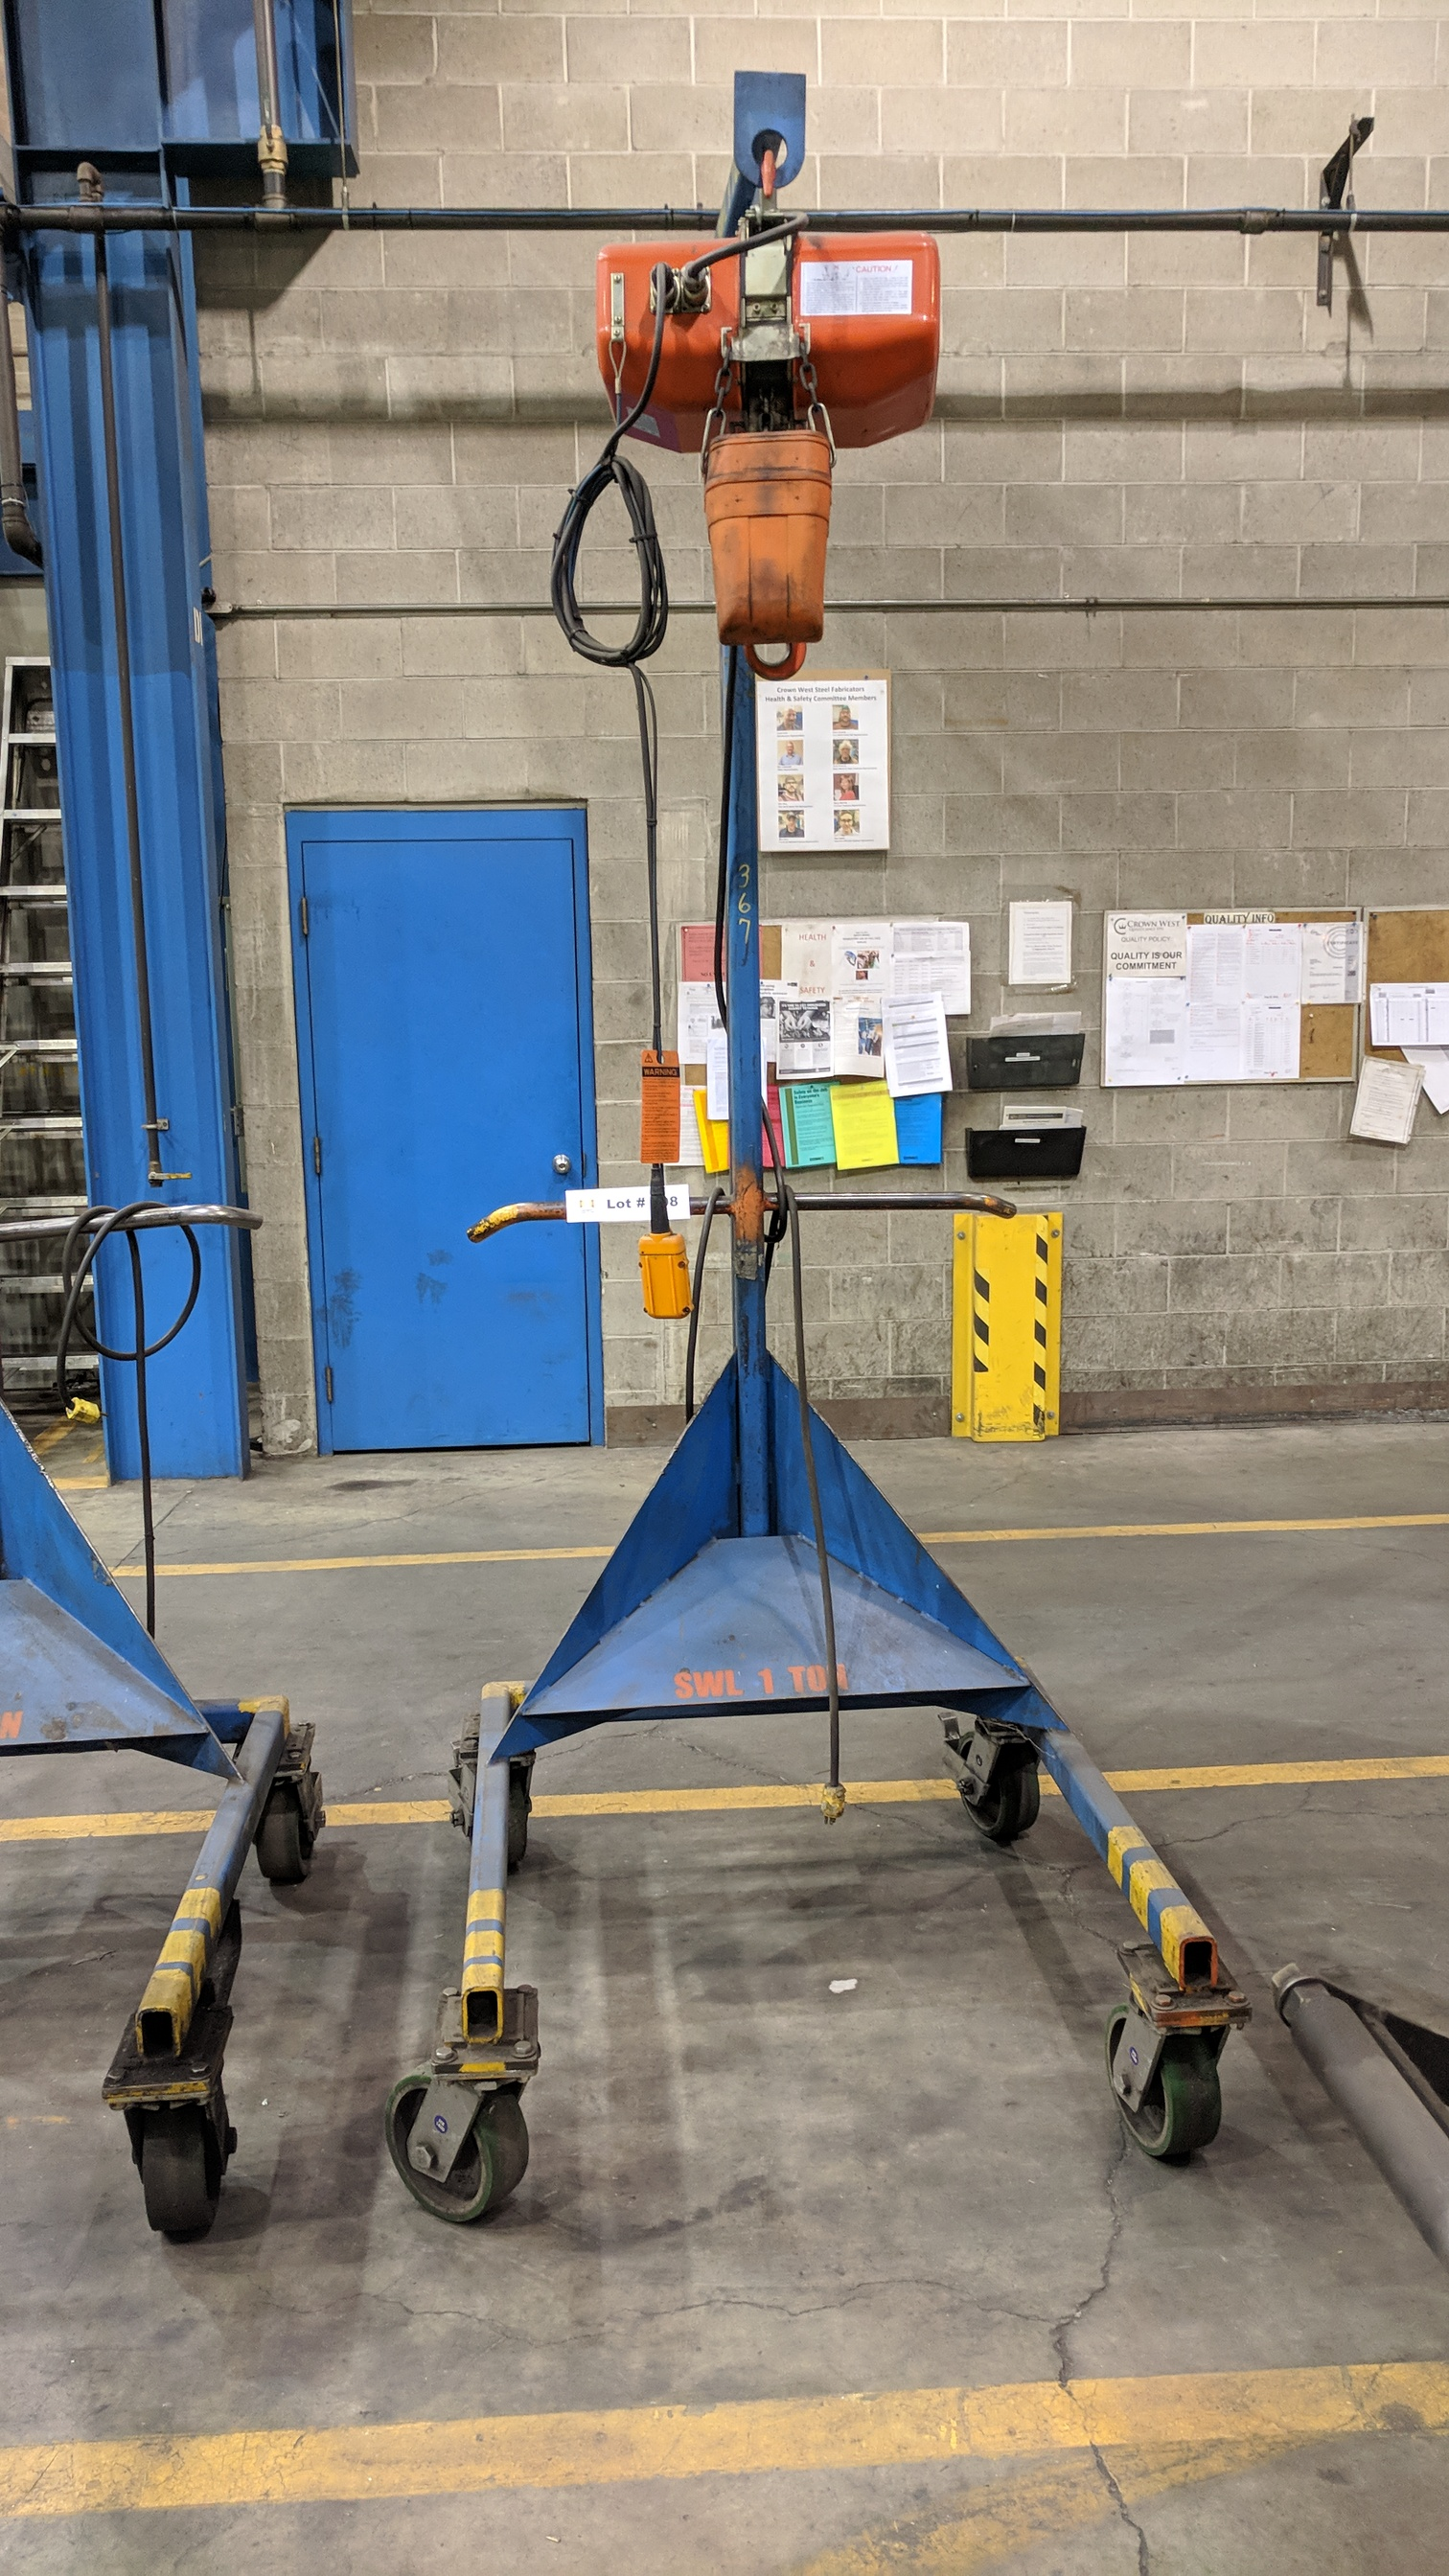 ENGINEERED DESIGN 2,200 LBS CAPACITY PORTABLE LIFTING GANTRY WITH JET FA1-1S 2,200 LBS CAPACITY